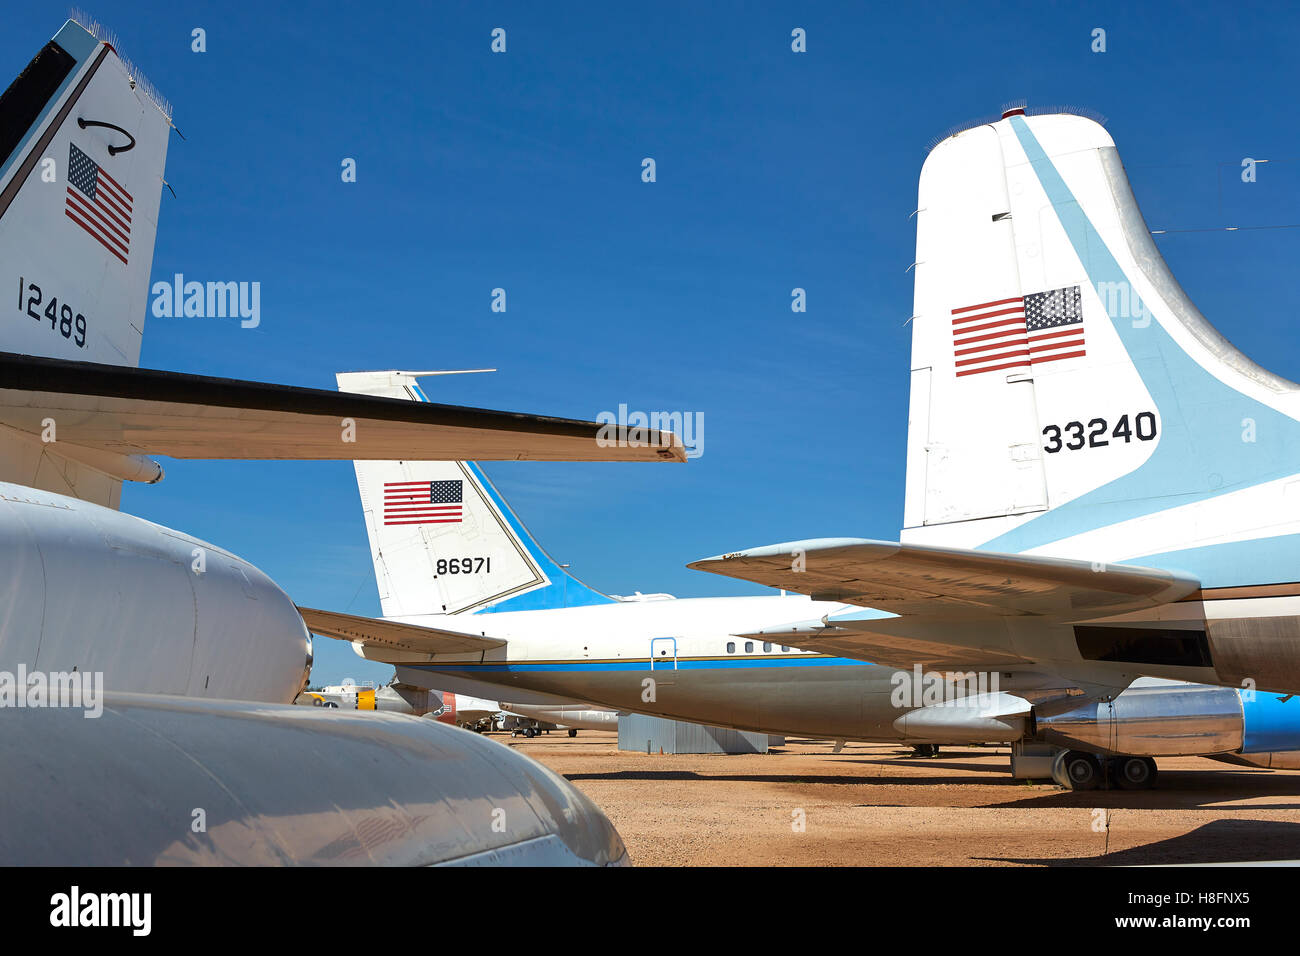 Air Force one Boeing VC 137C (preserved at Ronald Reagan